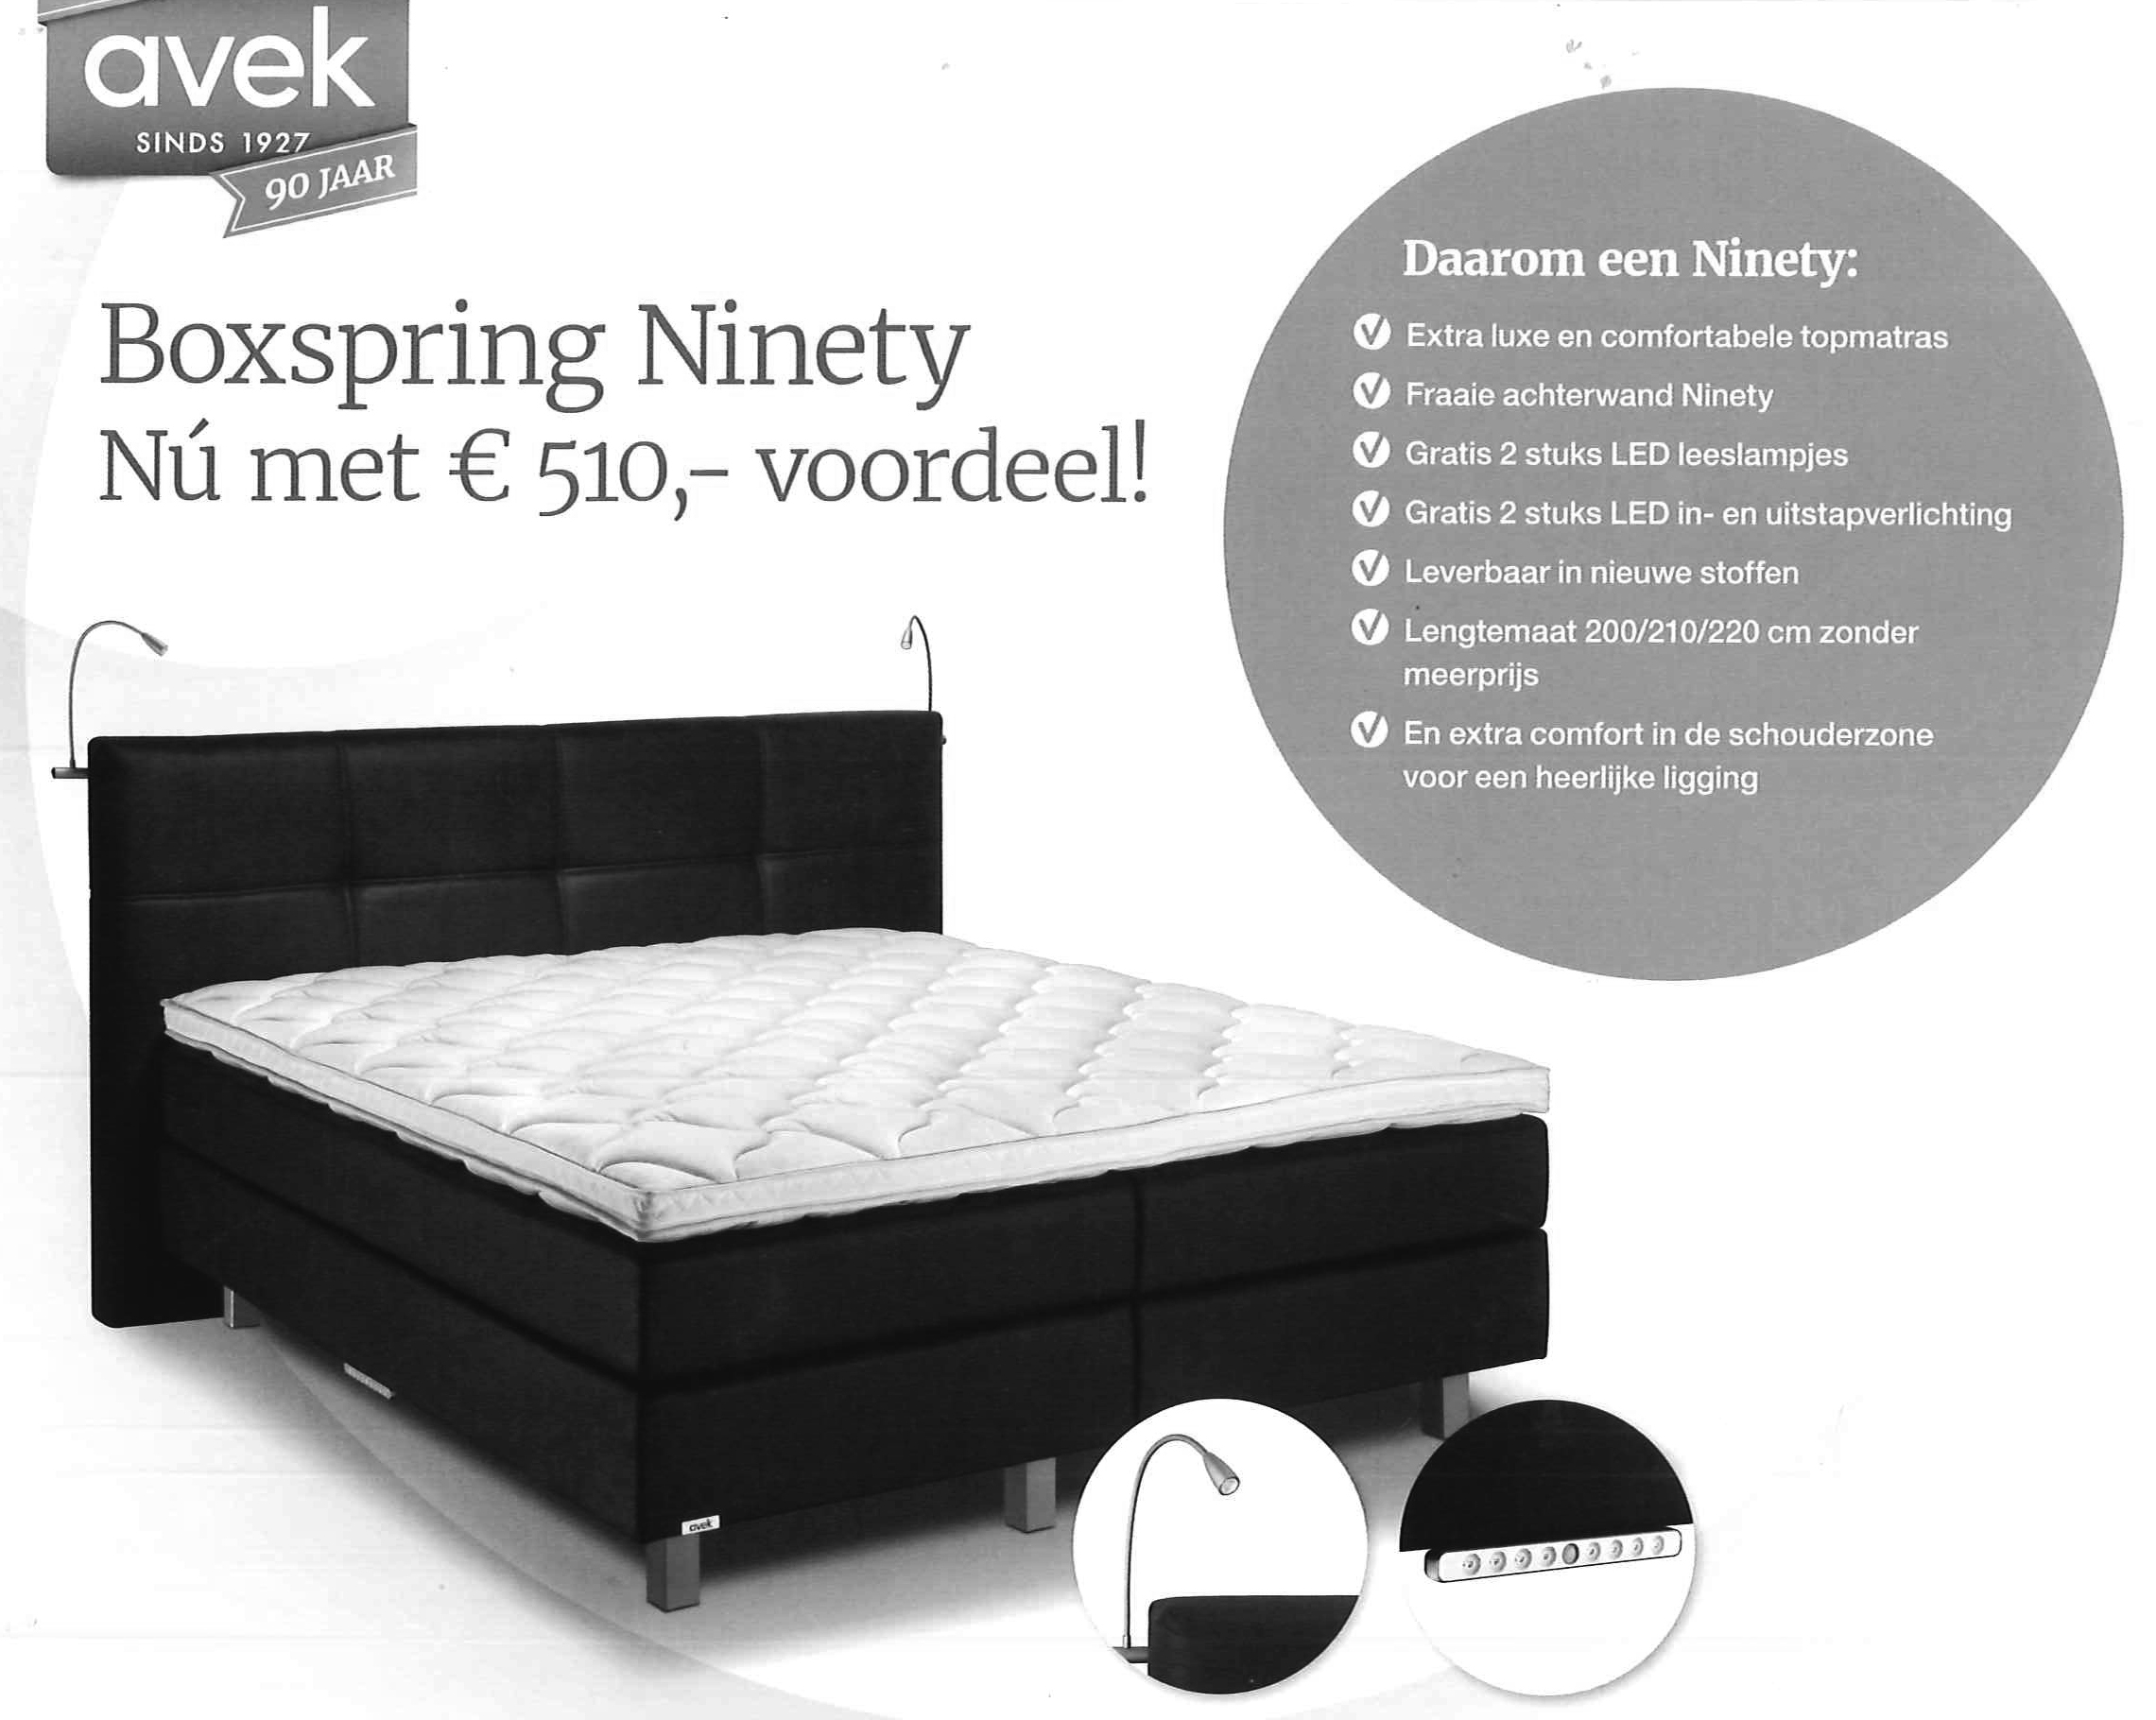 AVEK boxspring binatie 1927 model NINETY